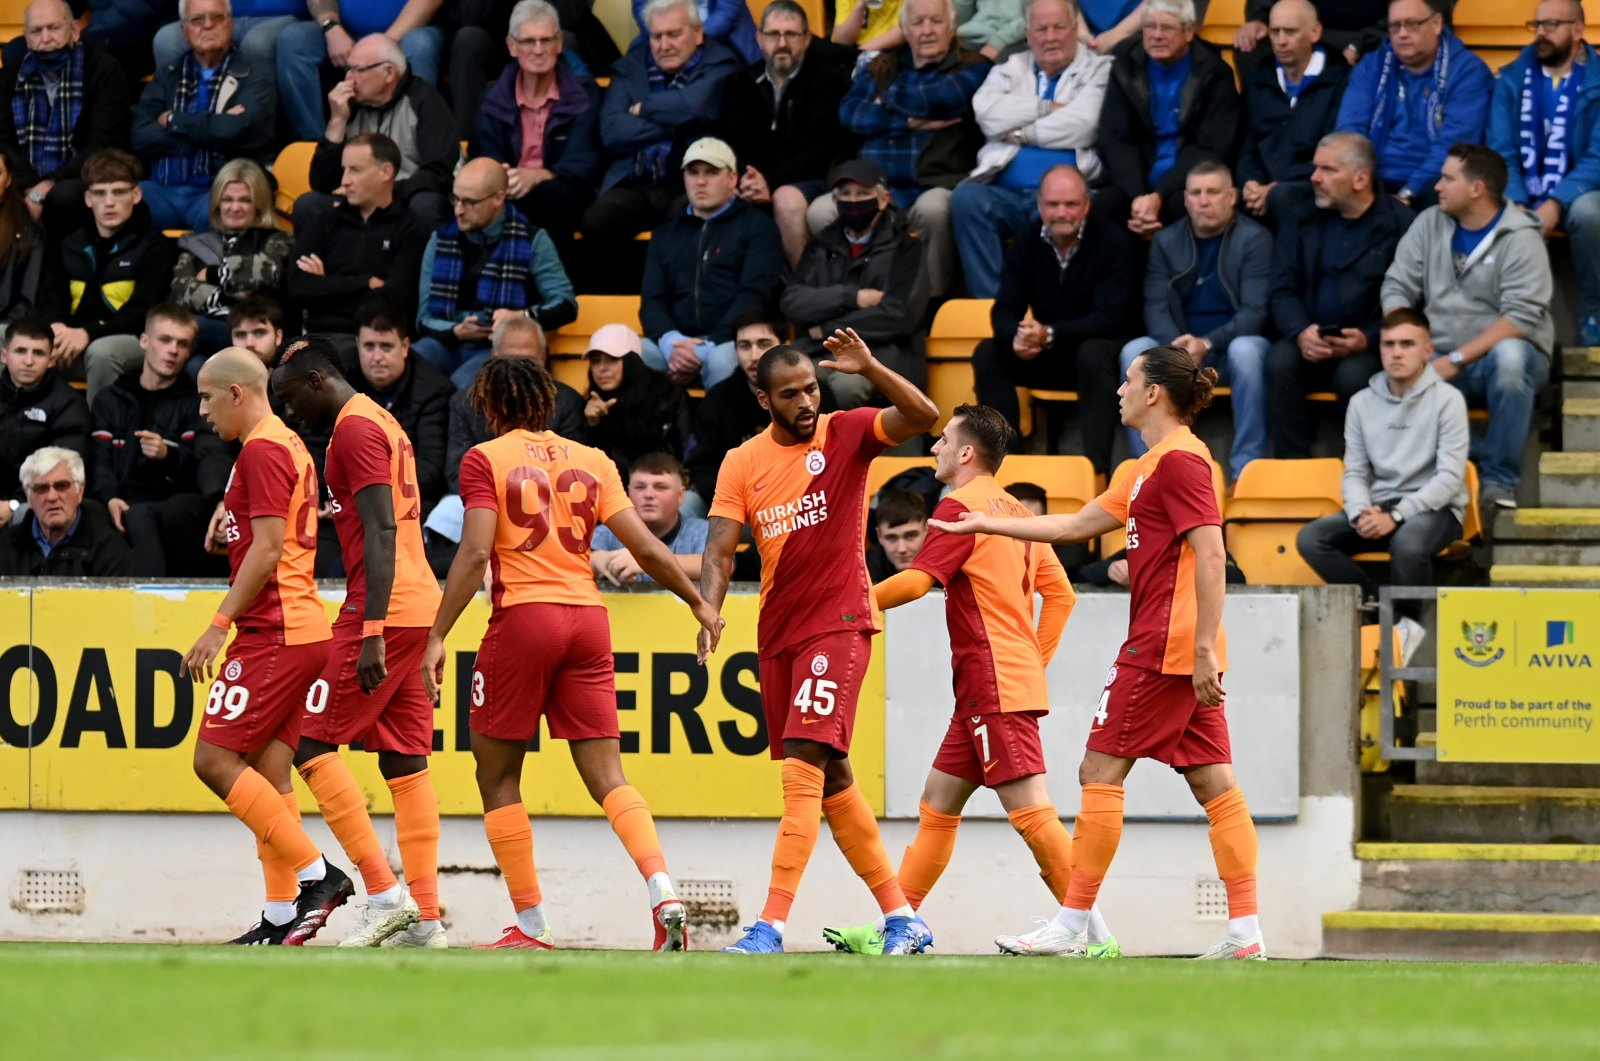 Galatasaray players celebrate after scoring a goal at Scotland's McDiarmid Park during the UEFA Europa League third qualifying round, Aug. 12, 2021 (AA Photo)